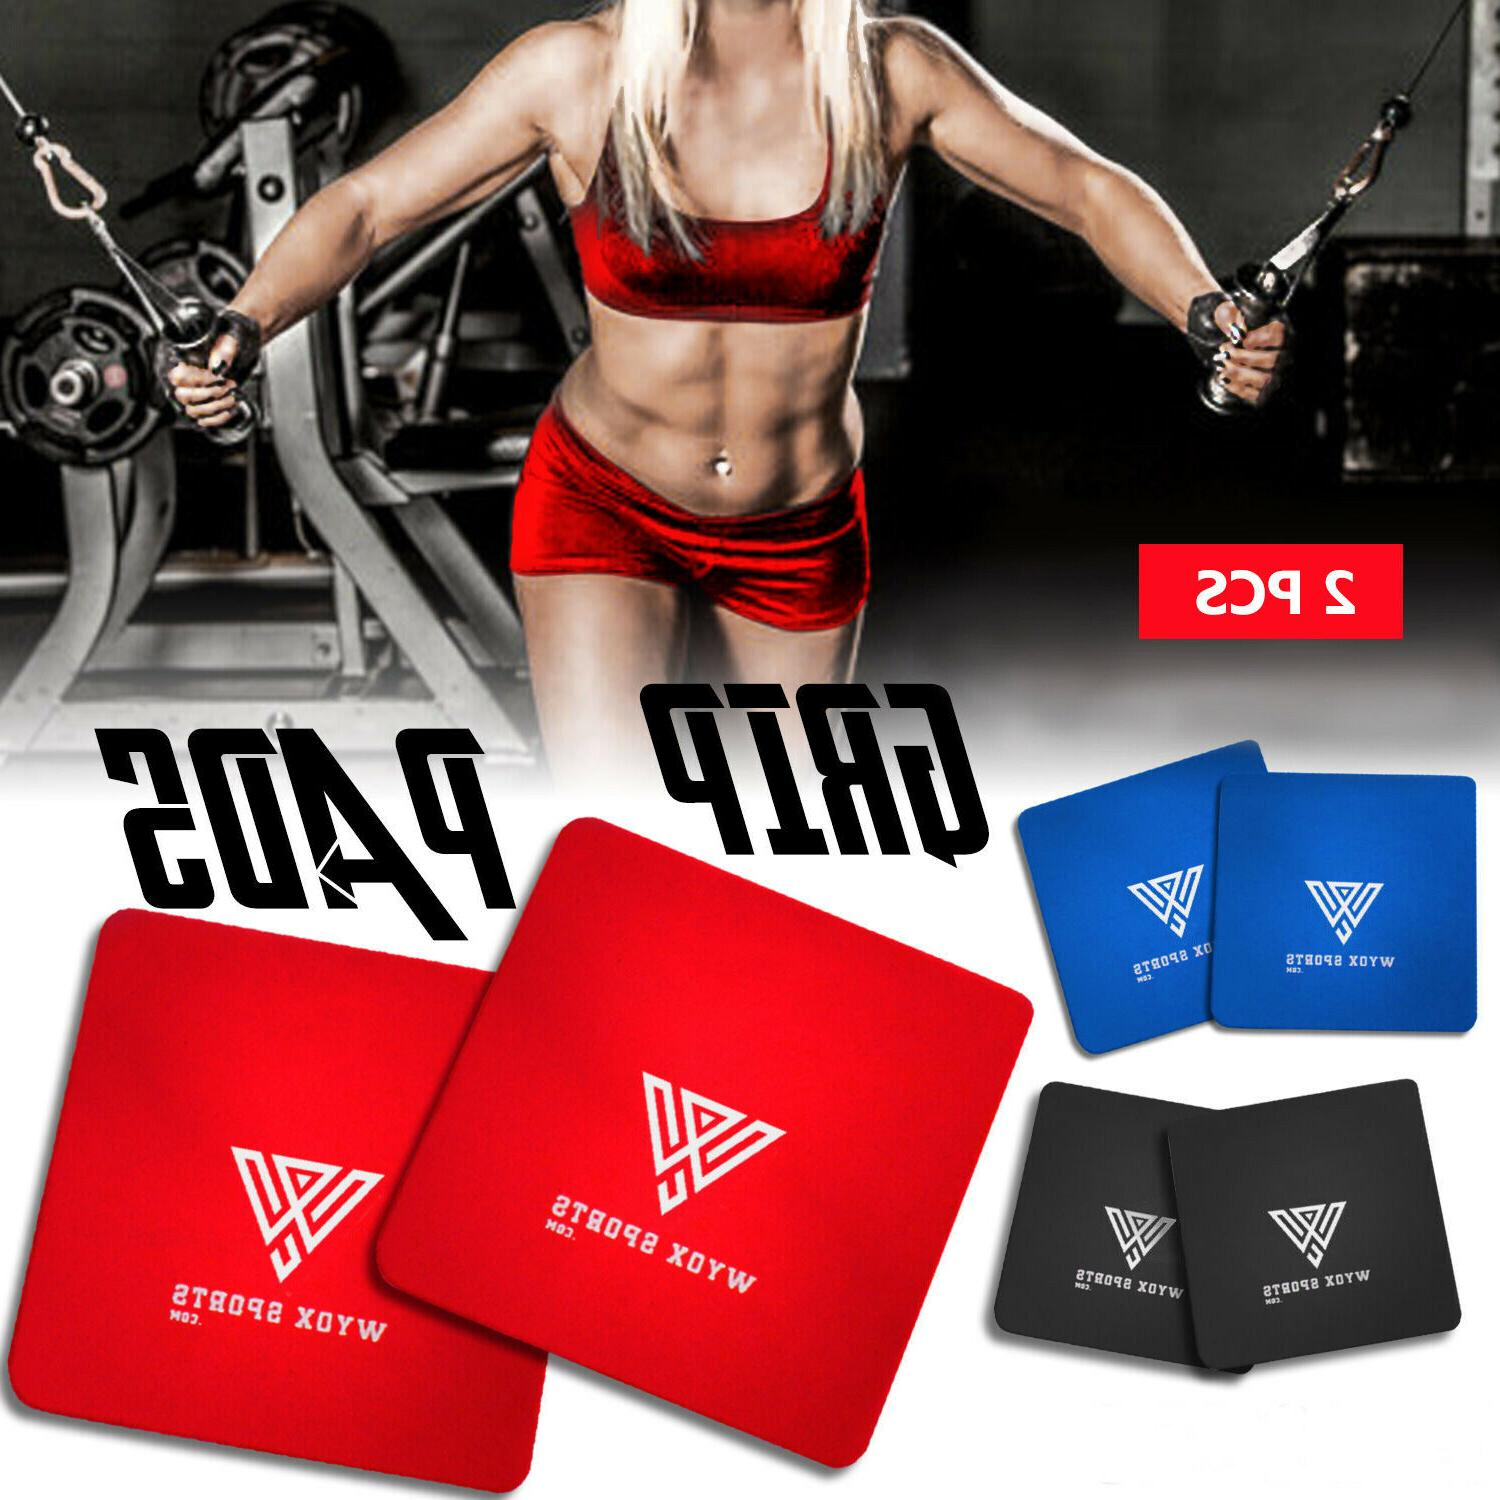 GRIP PADS BODY BUILDING  POWER TRAINING EXERCISE LATEST WEIGHT LIFTING GYM PADS